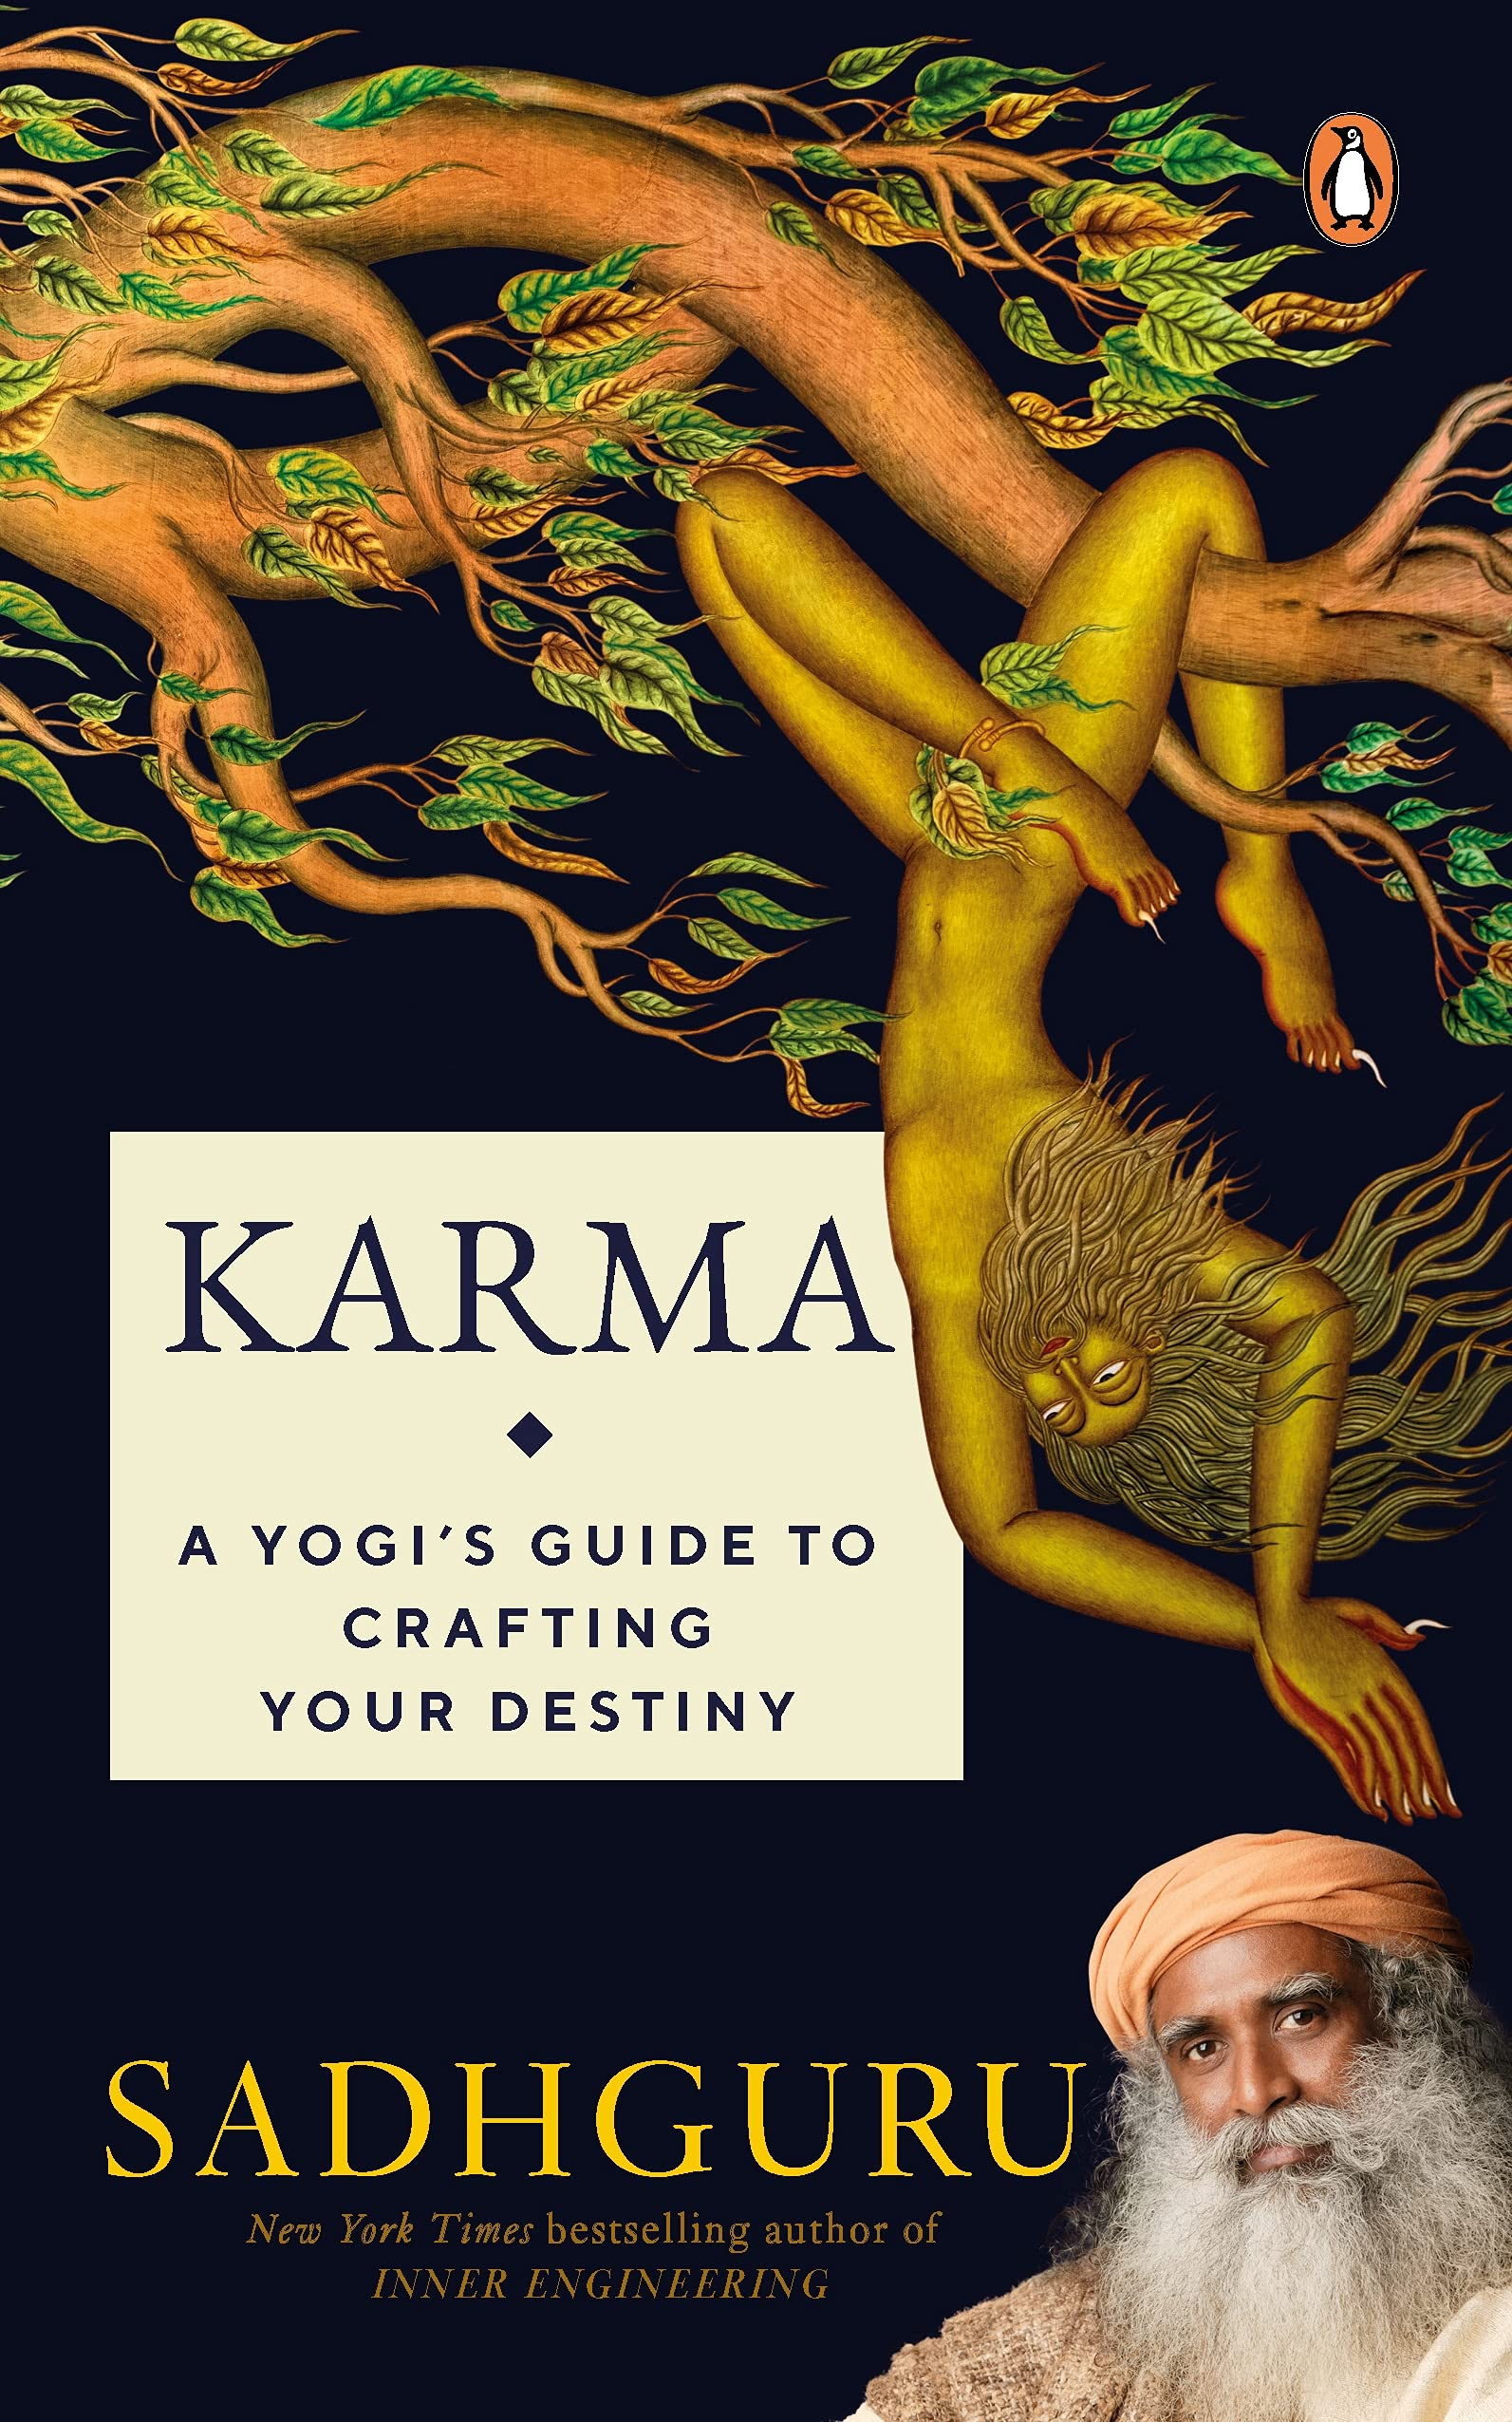 Karma: A Yogi's Guide to Crafting Your Destiny NEW YORK TIMES, USA TODAY, and PUBLISHERS WEEKLY BESTSELLER , must-read book on spirituality and self-improvement by Sadhguru